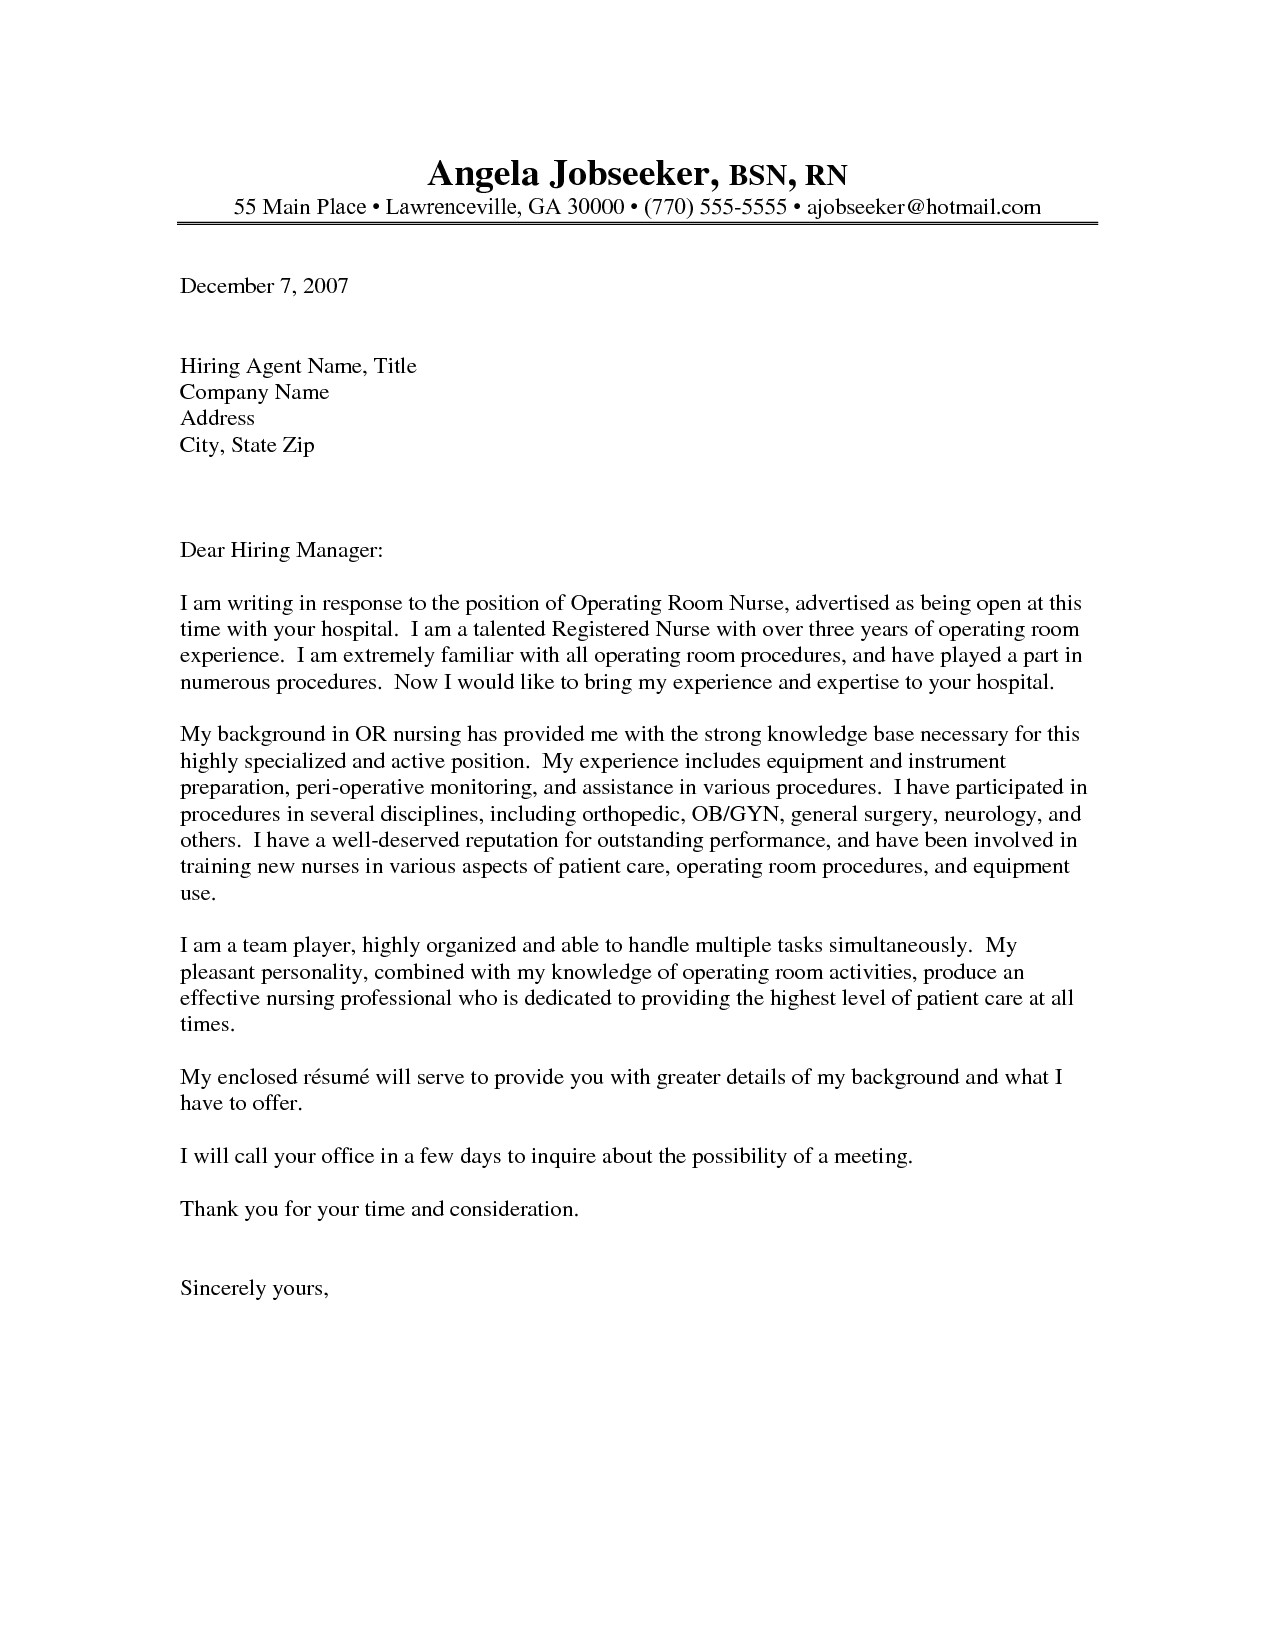 What Should Be In A Cover Letter for A Resume What Should Be Included In A Cover Letter for A Resume